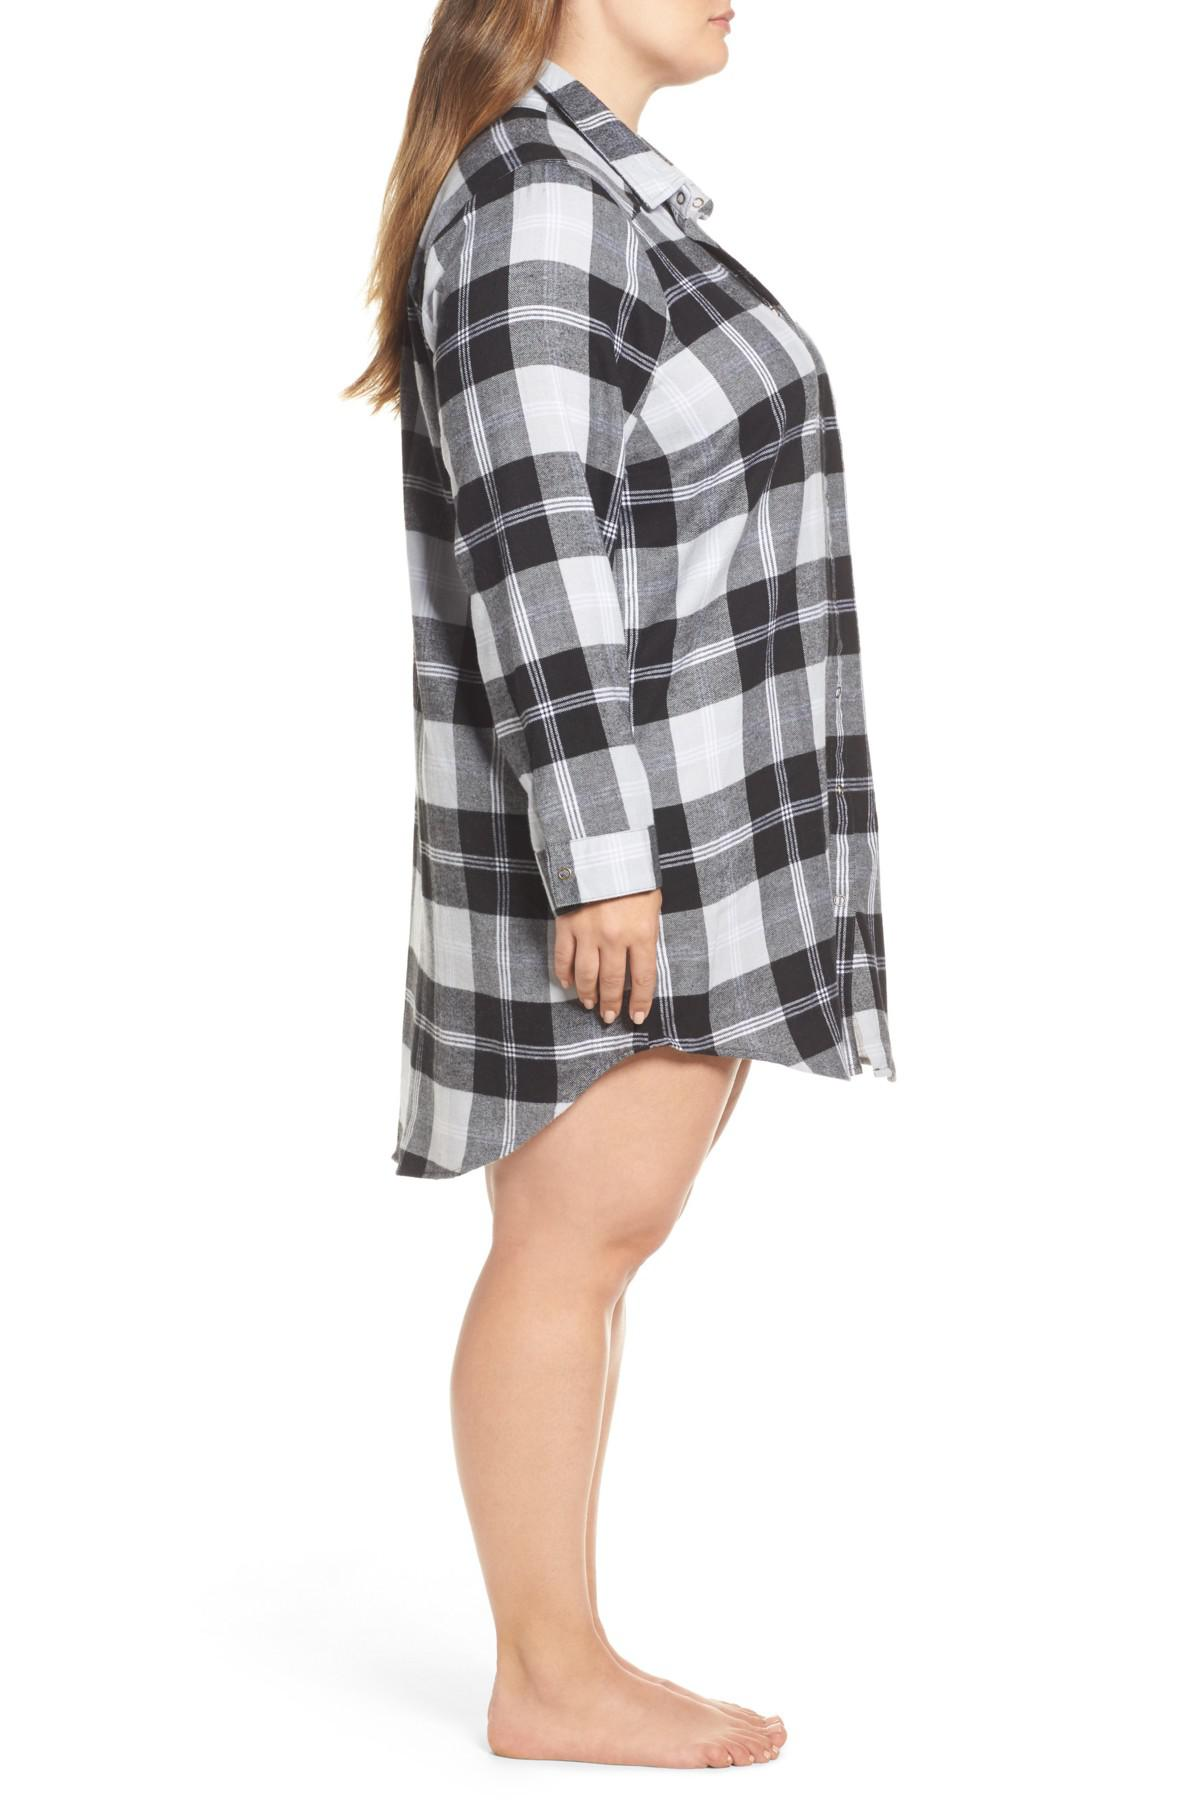 Lyst Make Model Plaid Flannel Nightshirt Plus Size In Gray